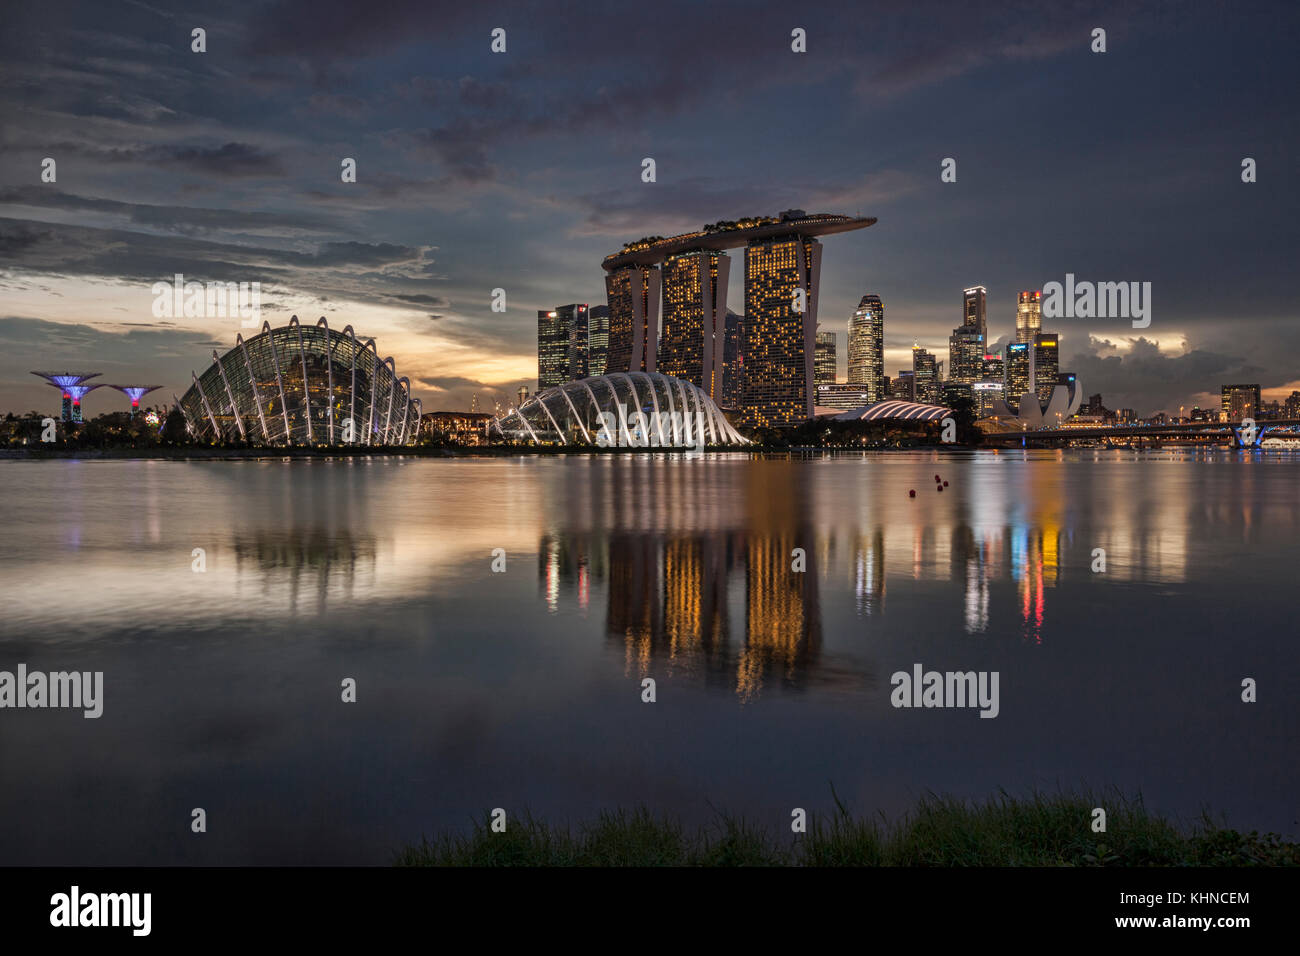 Singapore skyline reflected in Marina Bay, with Supertrees, the Cloud and Flower Domes, Marina Bay Sands and the - Stock Image